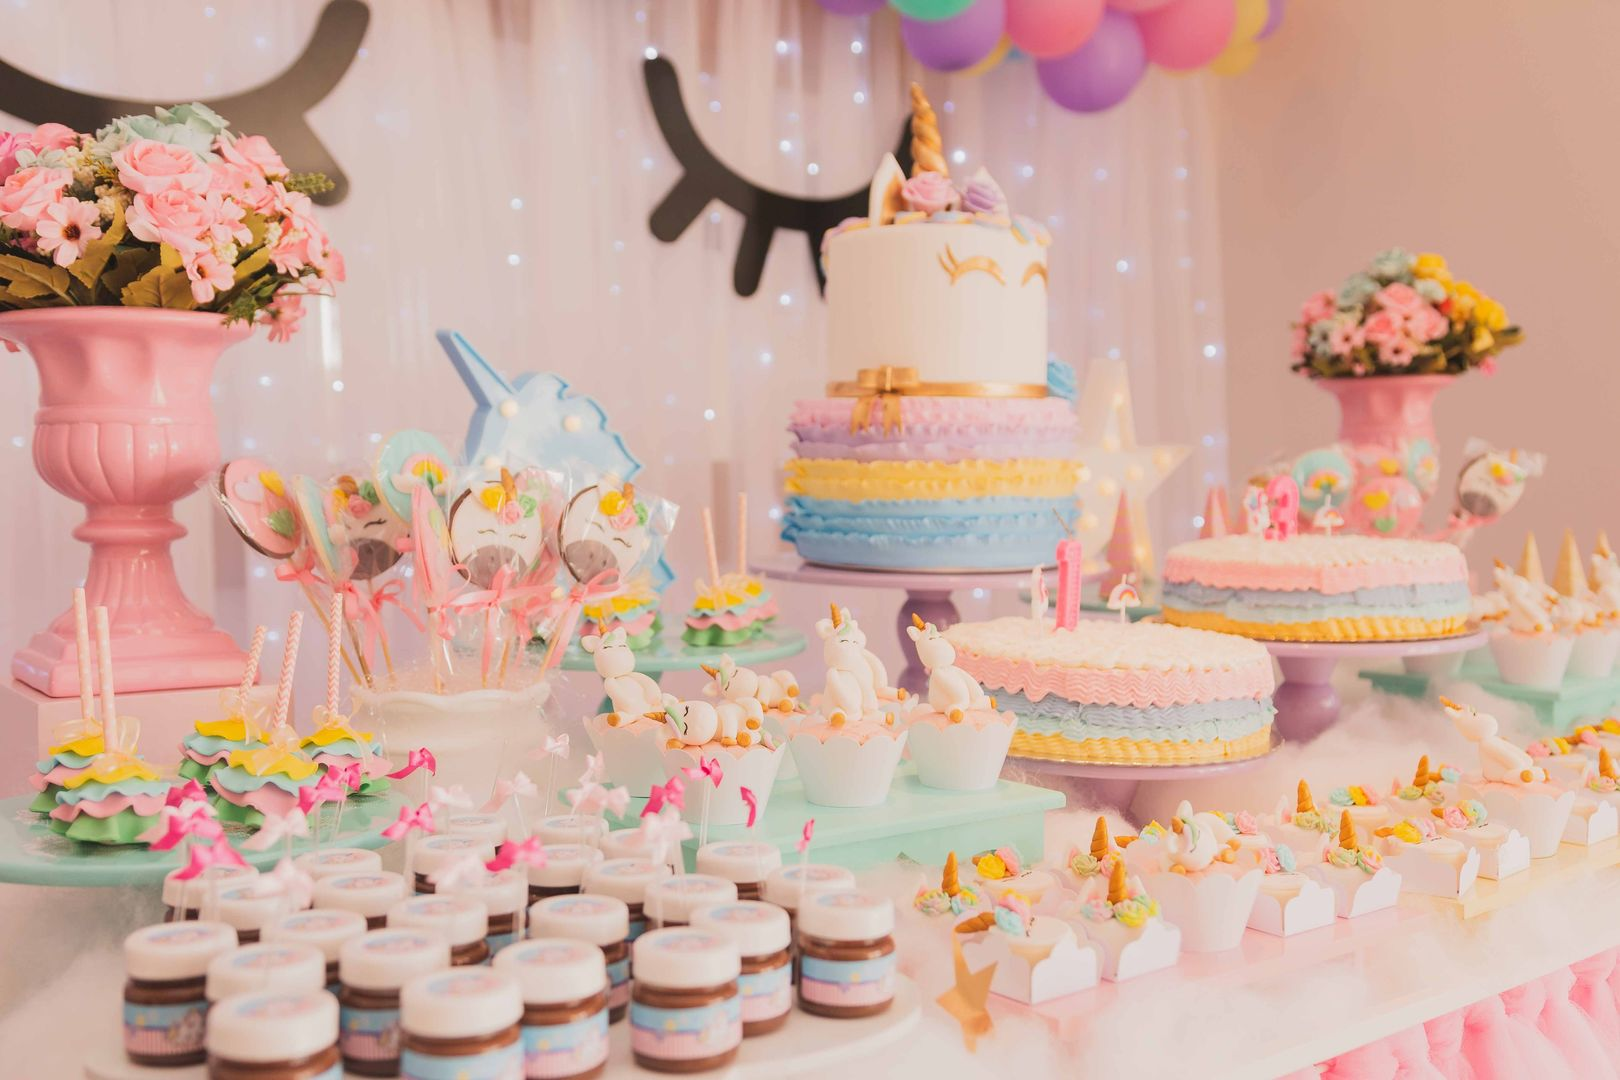 How to Make Your Baby's First Birthday Special - TWL Working Mom